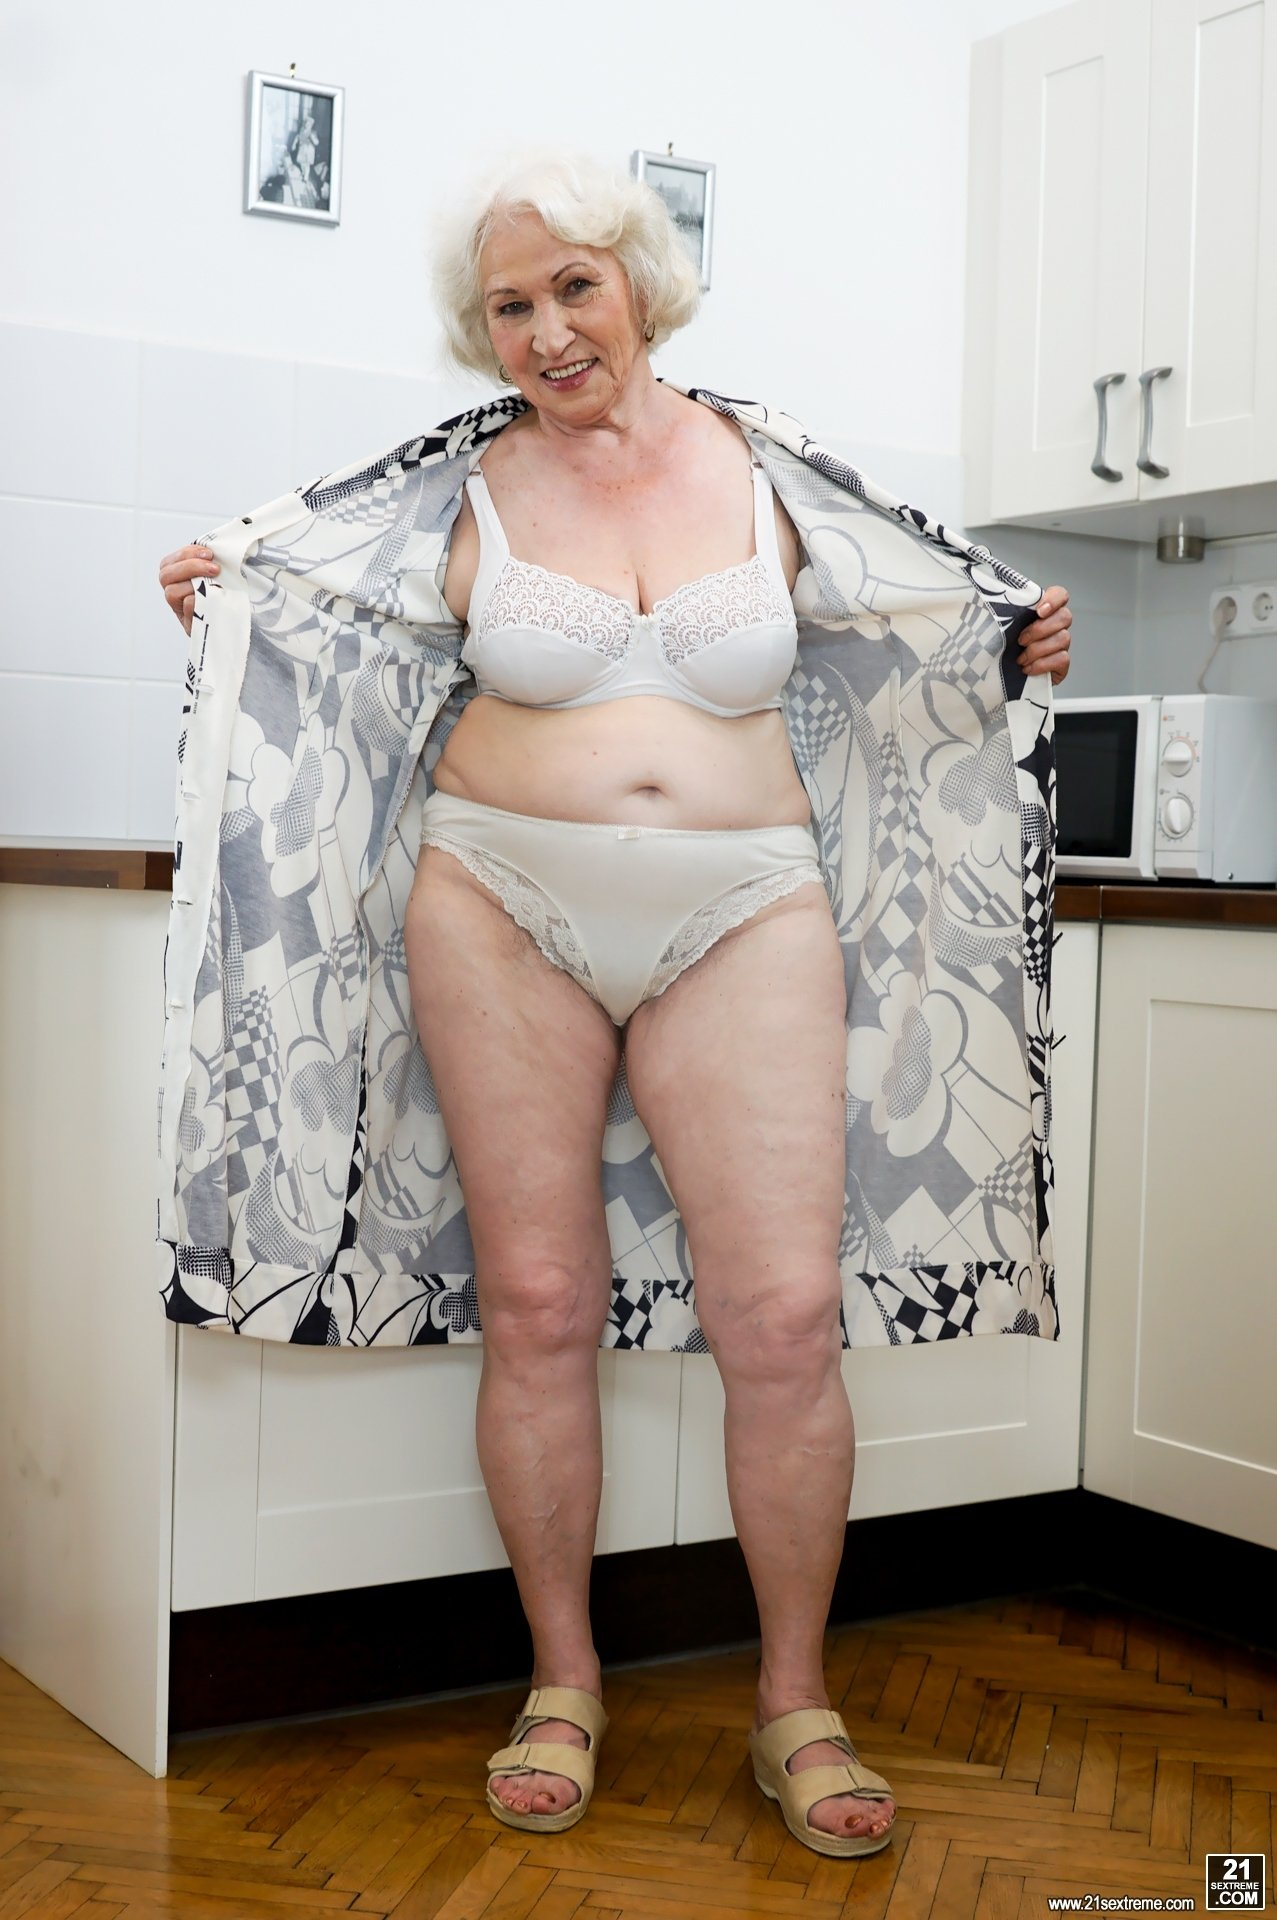 hot granny xxx pics add photo